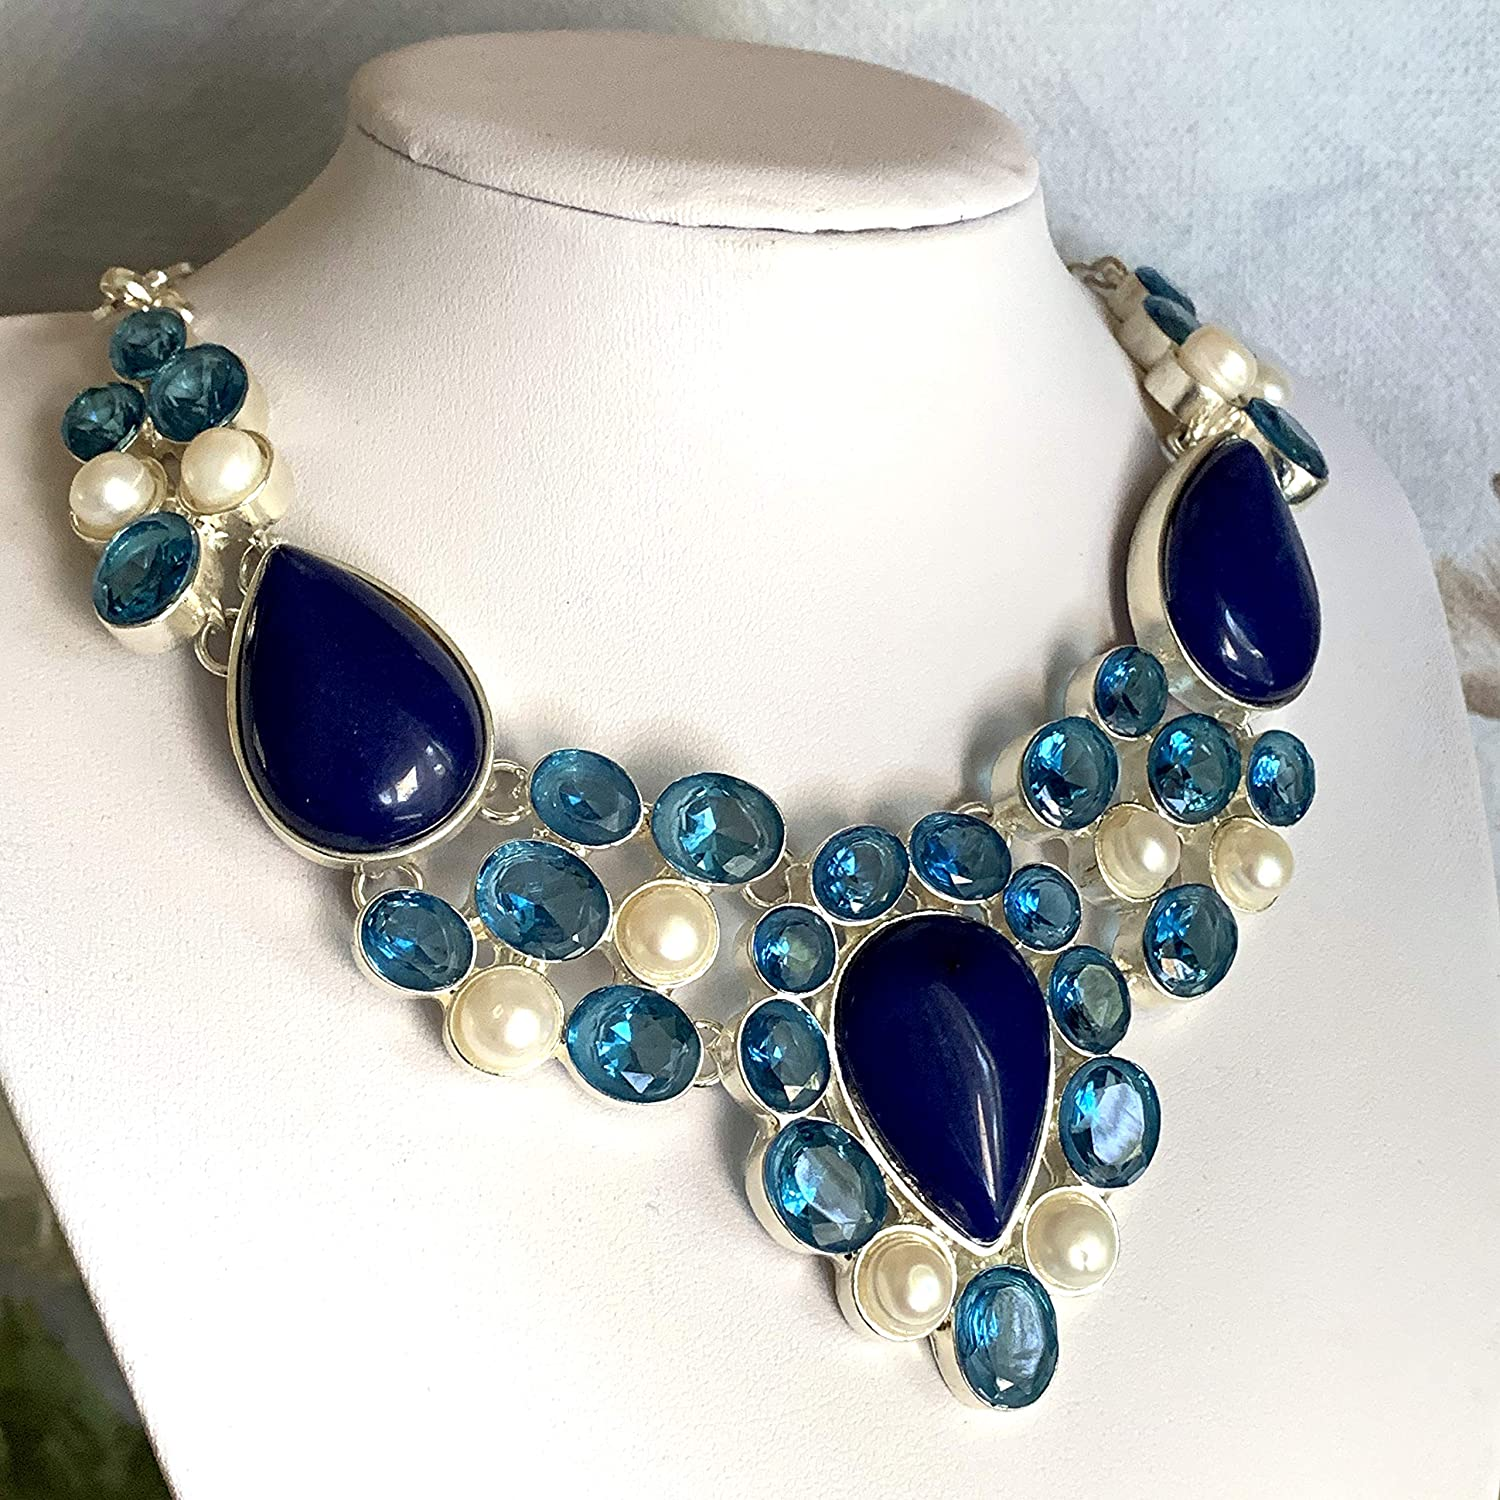 Blue with White Agate Necklace Gemstone Necklace Bib Necklace Silver Necklace Statement Necklace